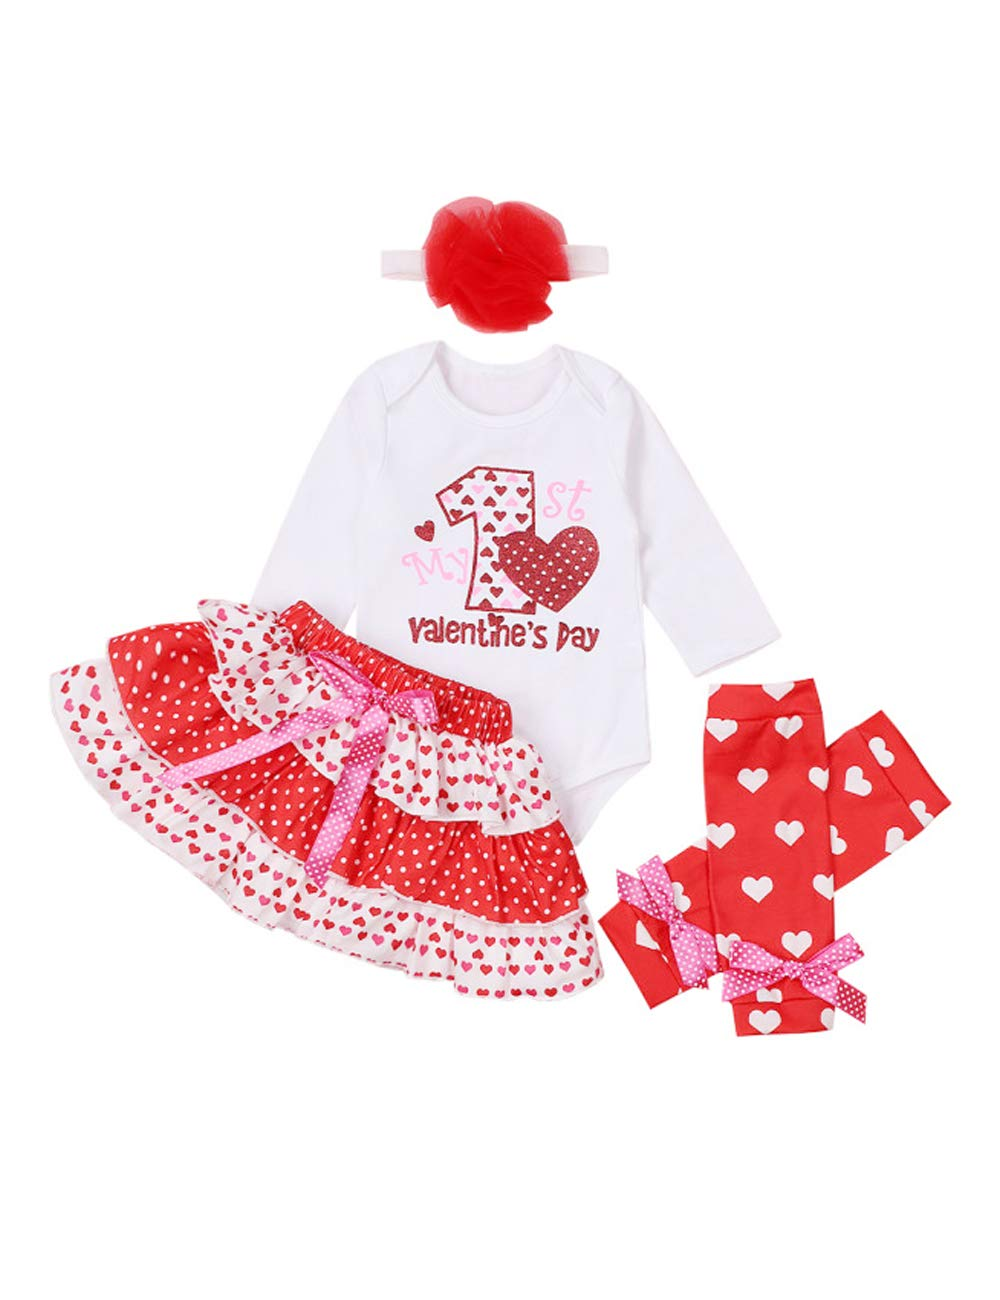 My 1'st Valentine's Day Newborn Infant Baby Outfit Girl Romper Tutu Skirt Headband Leg Warmers Outfits Set